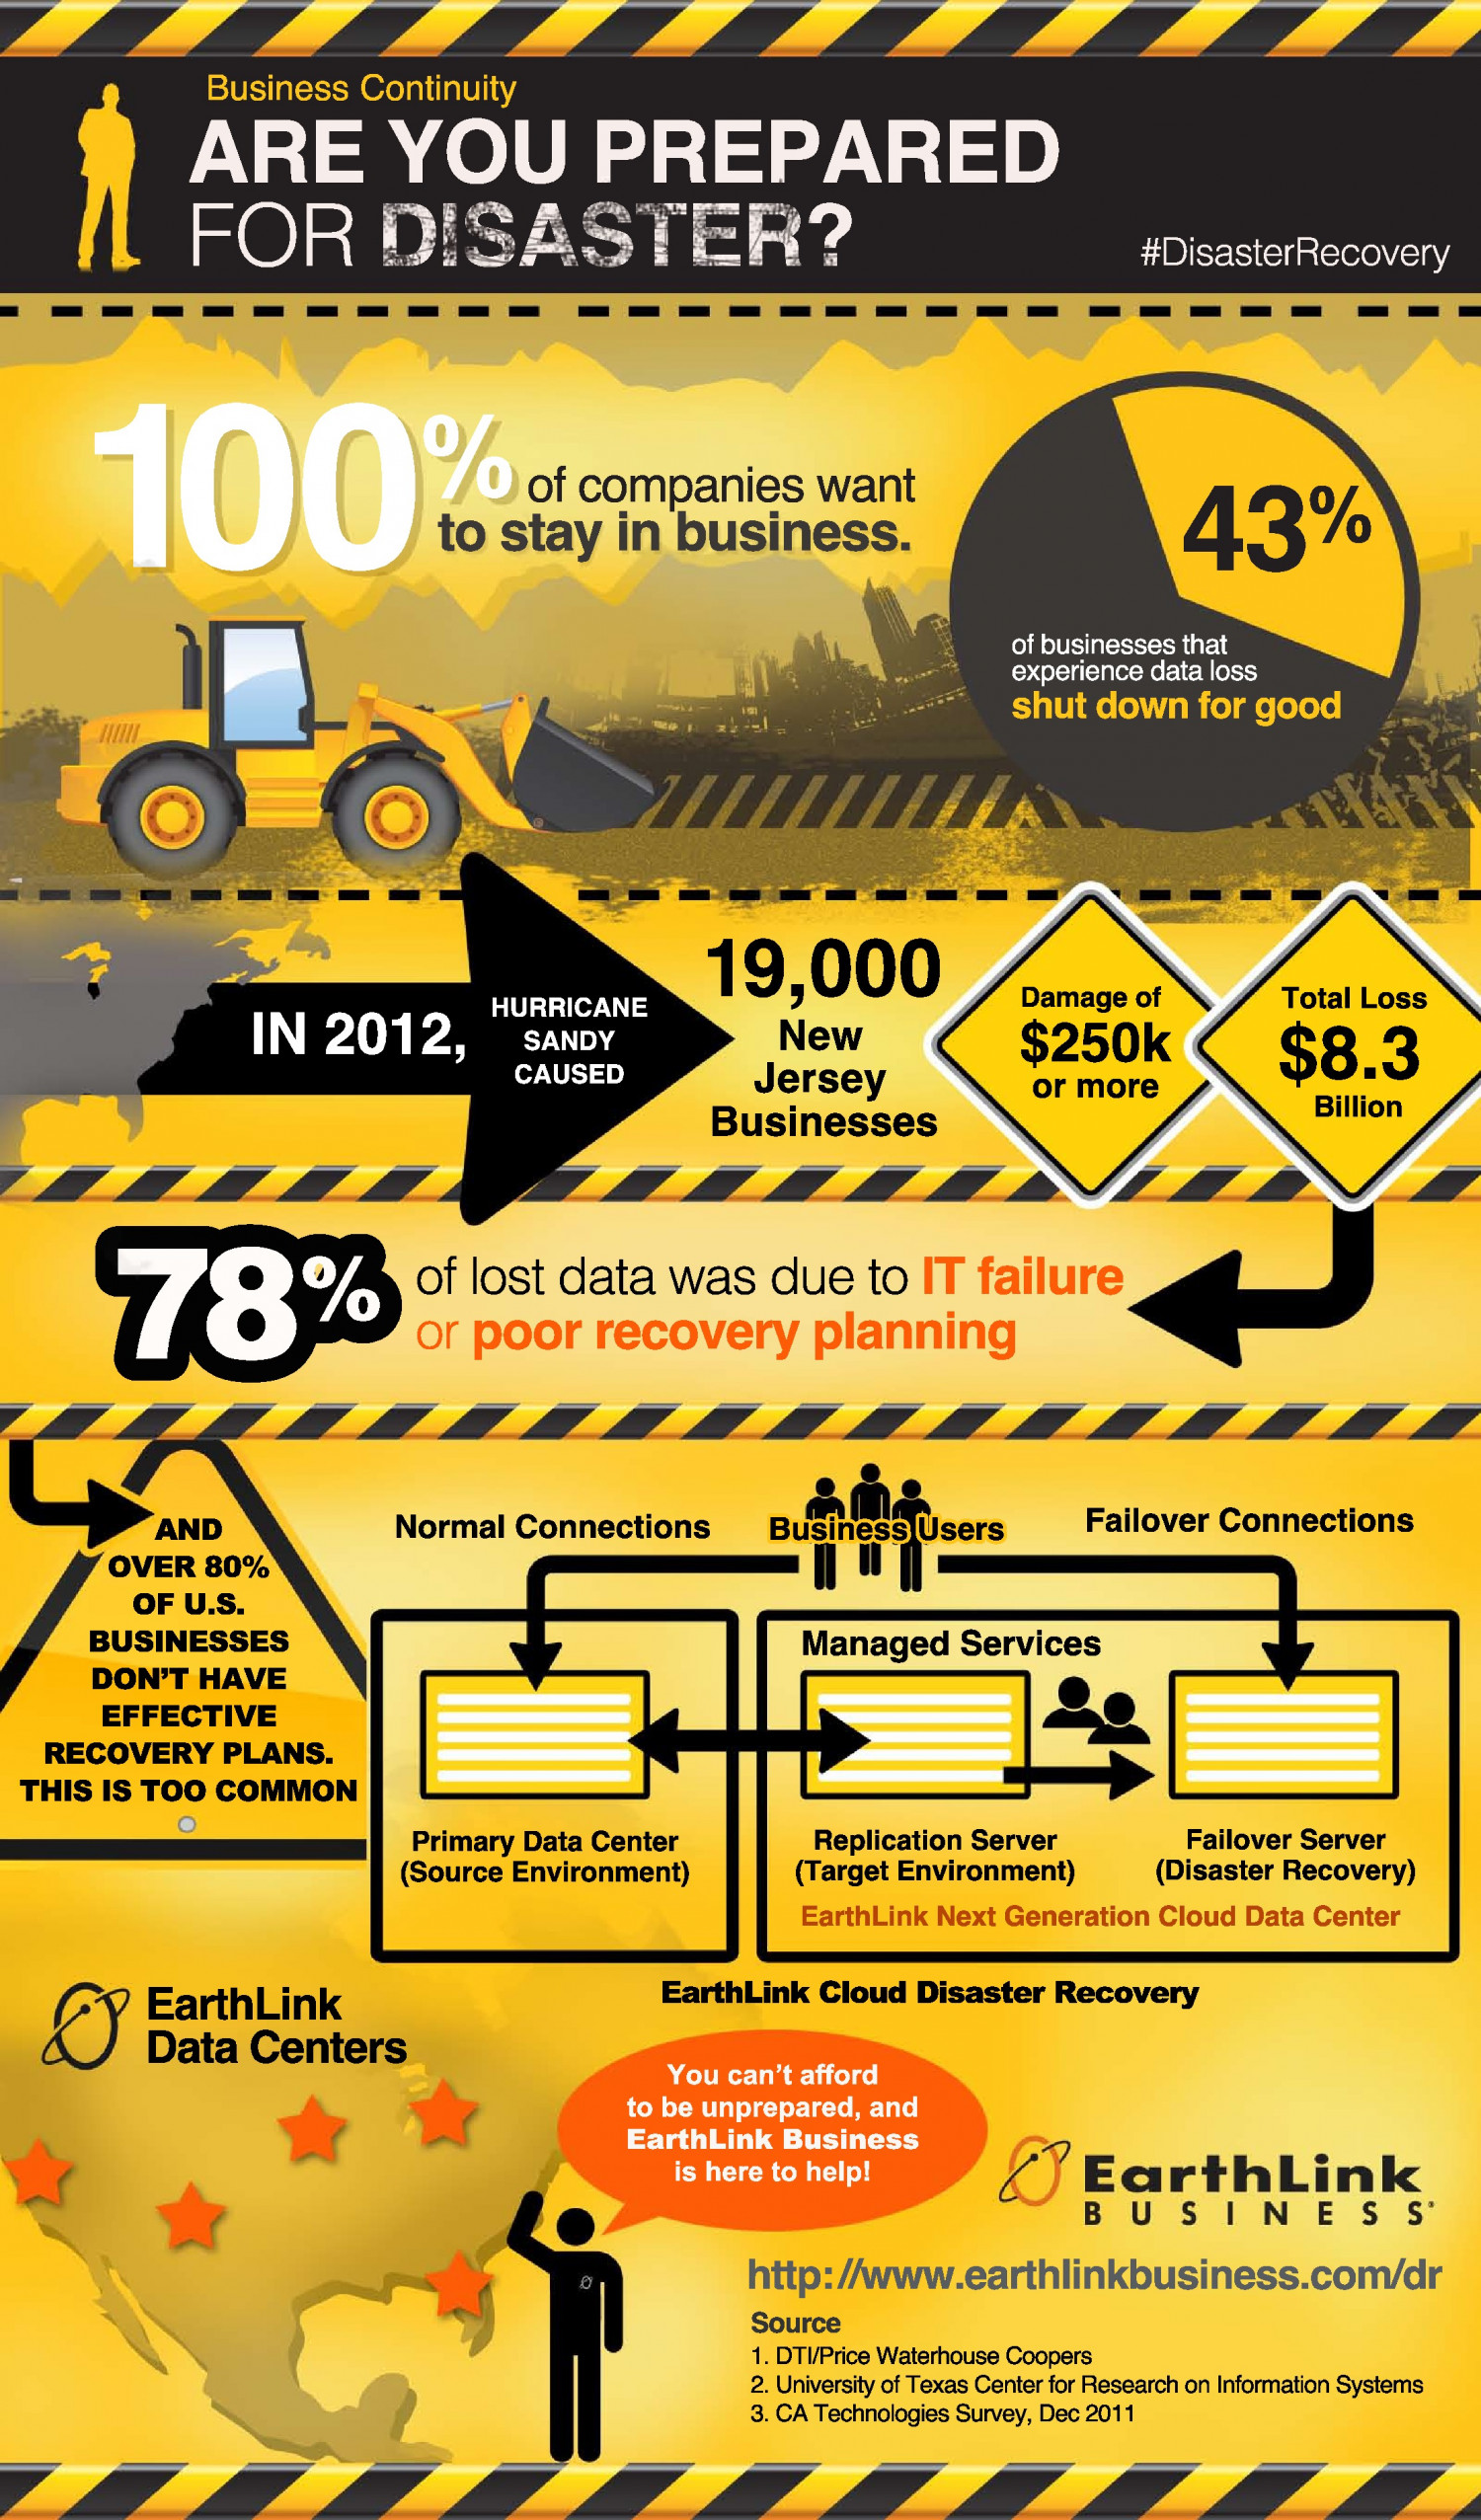 EarthLink Business Disaster Recovery Infographic Infographic